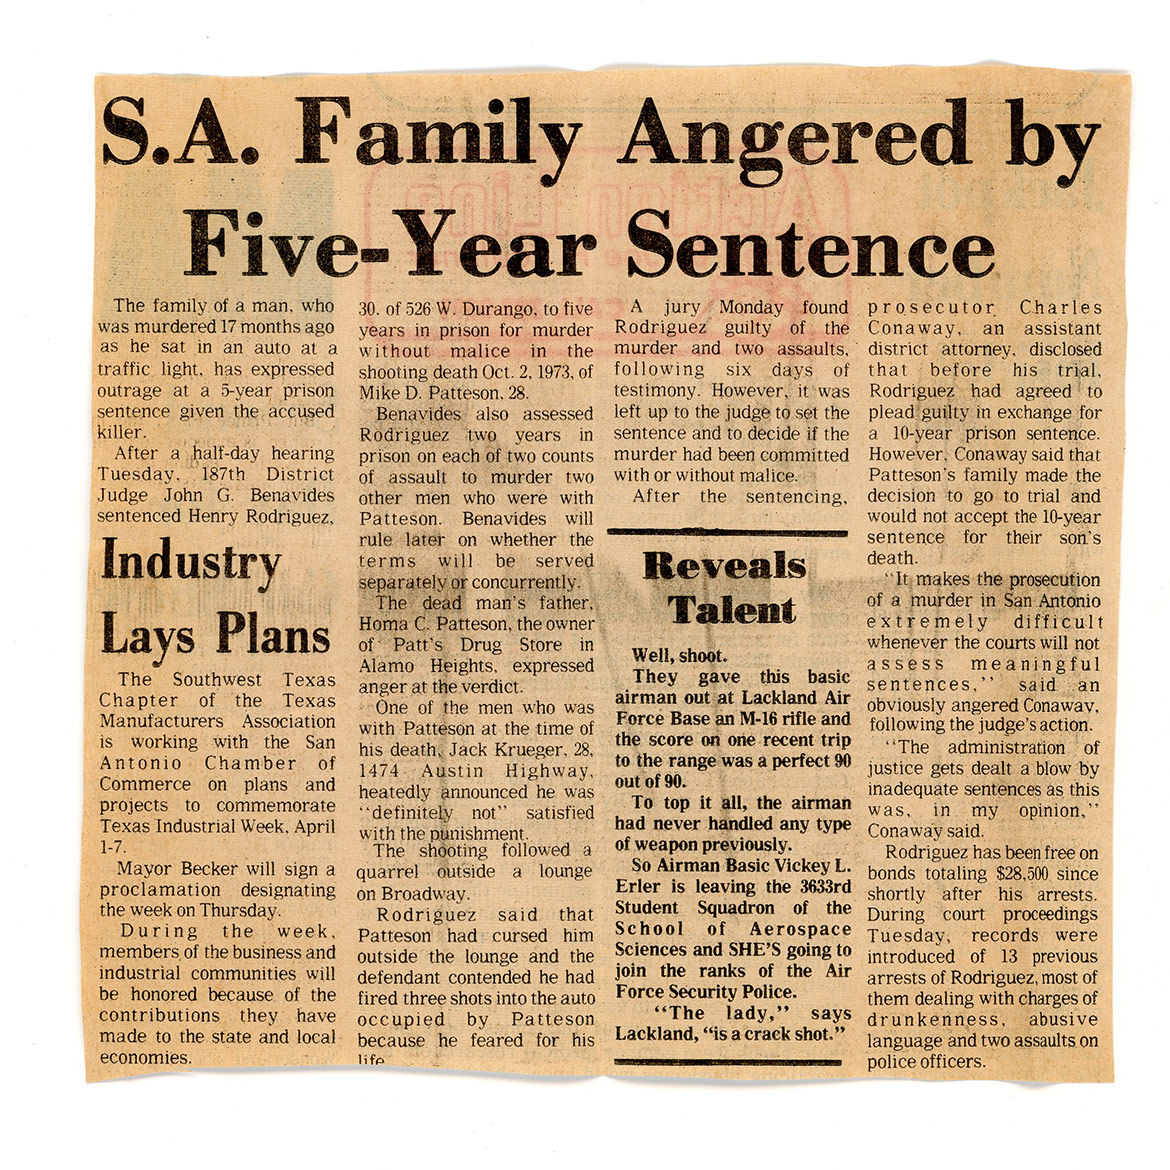 A newspaper article in response to the verdict of Henry Rodriguez.